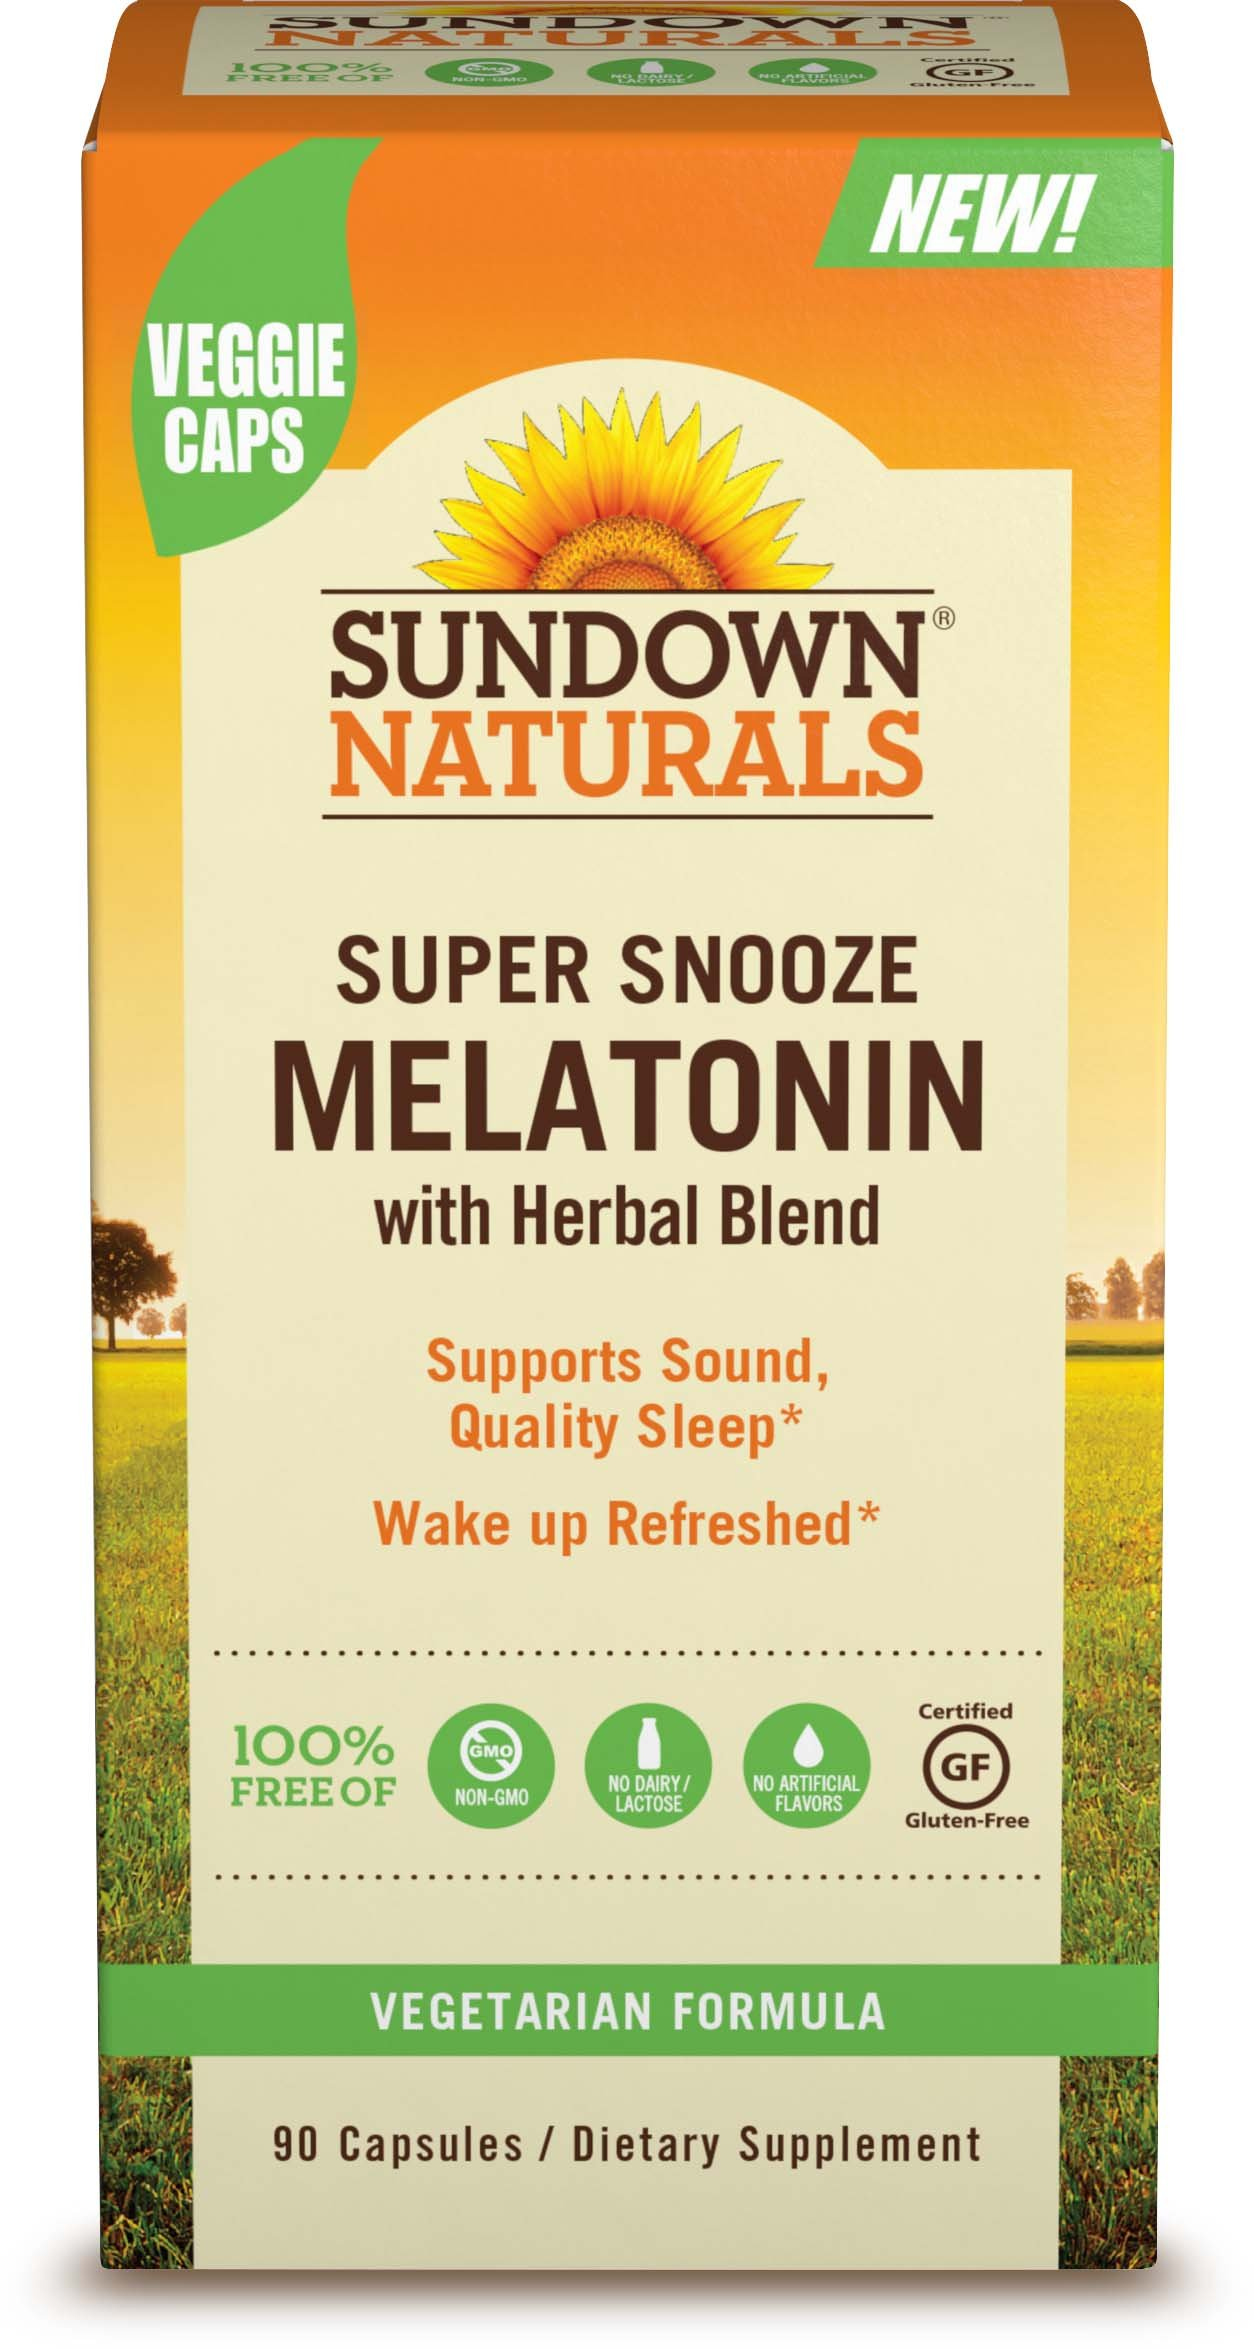 Sundown Naturals Super Snooze Melatonin Capsules, 90 Count